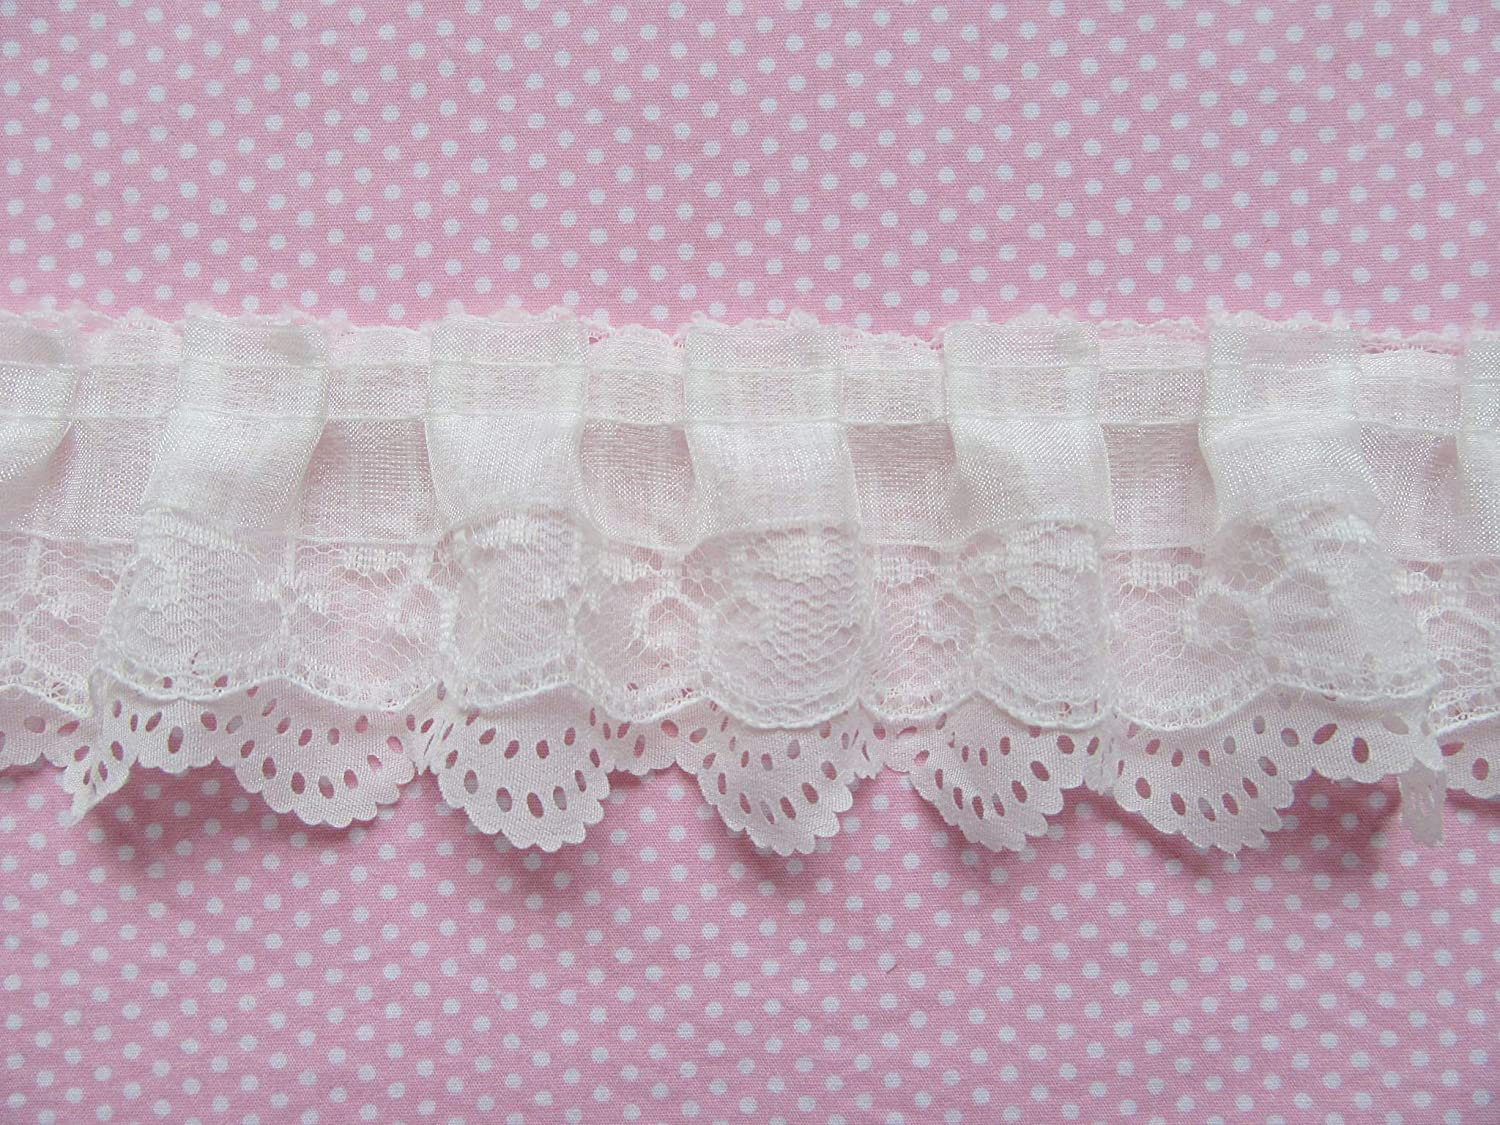 20 Yards Layers Pleated Ruffles Trim Lace Edging Fabric Frill DIY Craft New NR9